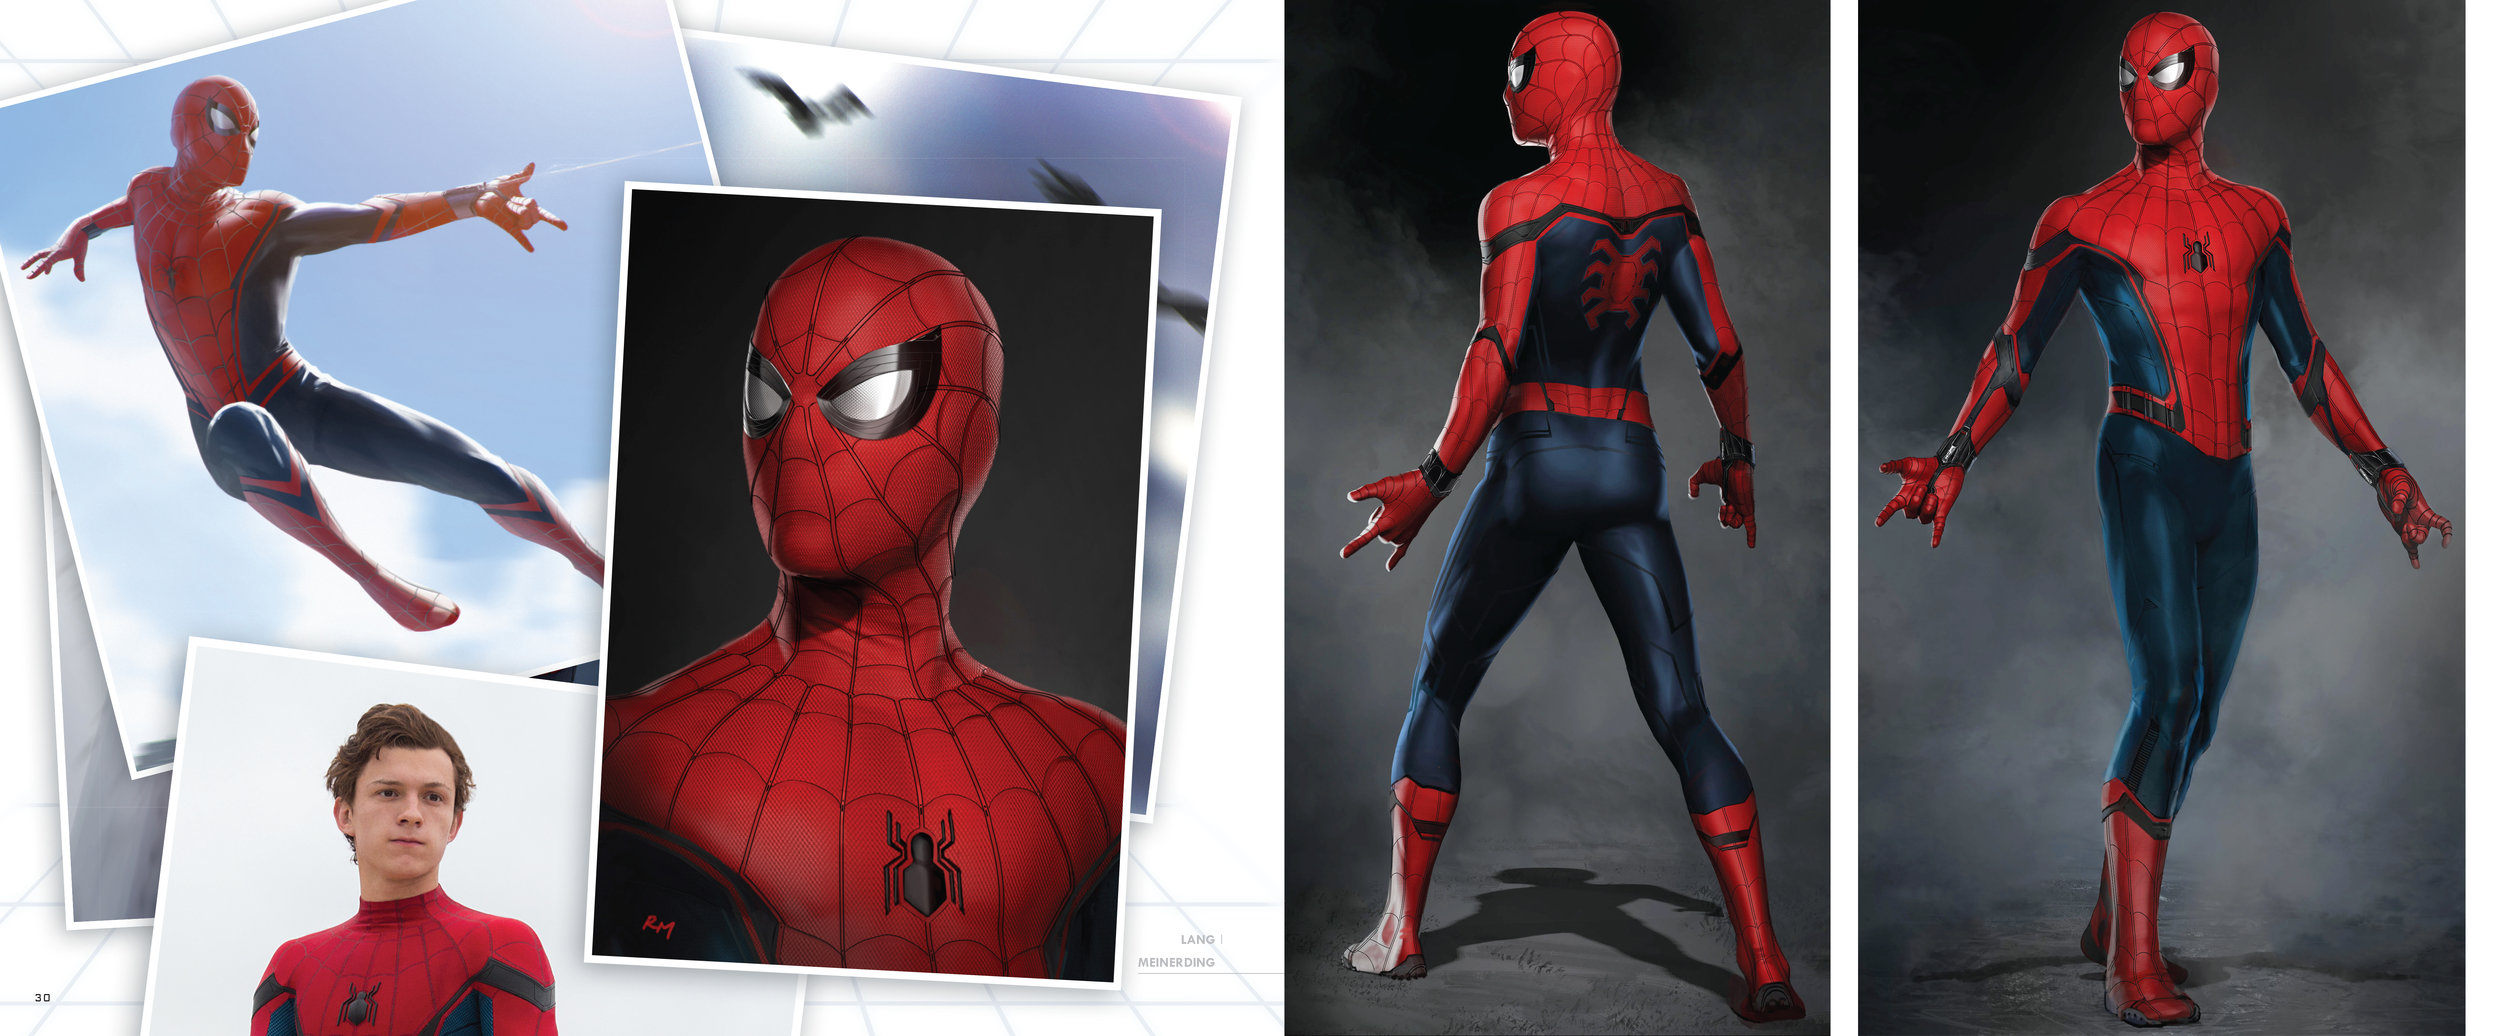 Design and layout for  The Art of Marvel Studio's Spider-Man Homecoming . Content copyright Marvel Entertainment, 2017.